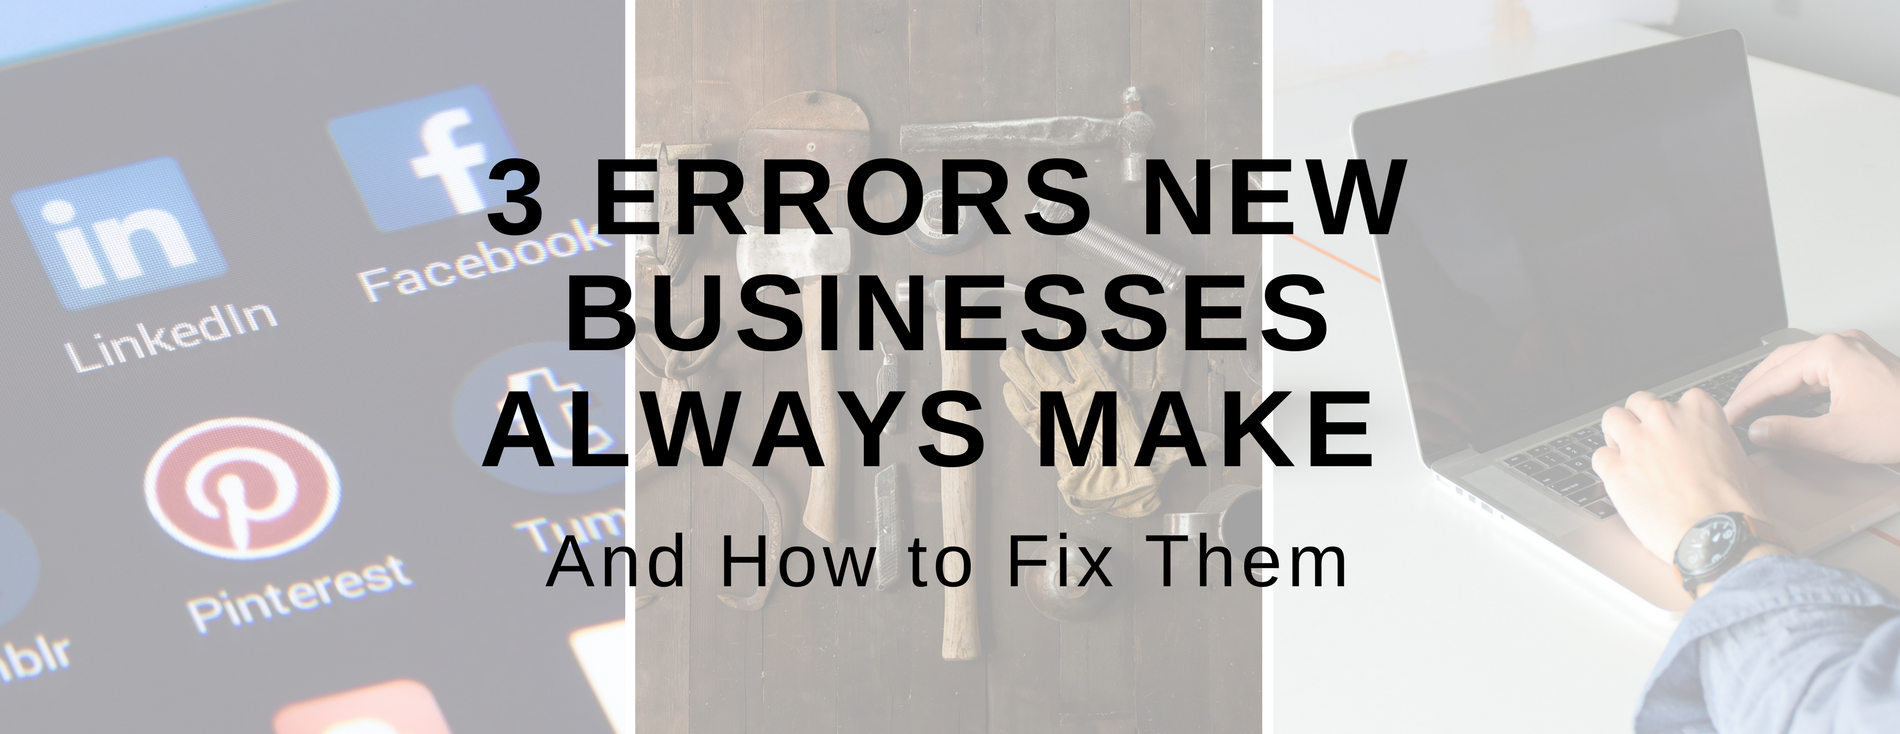 3 Errors New Businesses Always Make